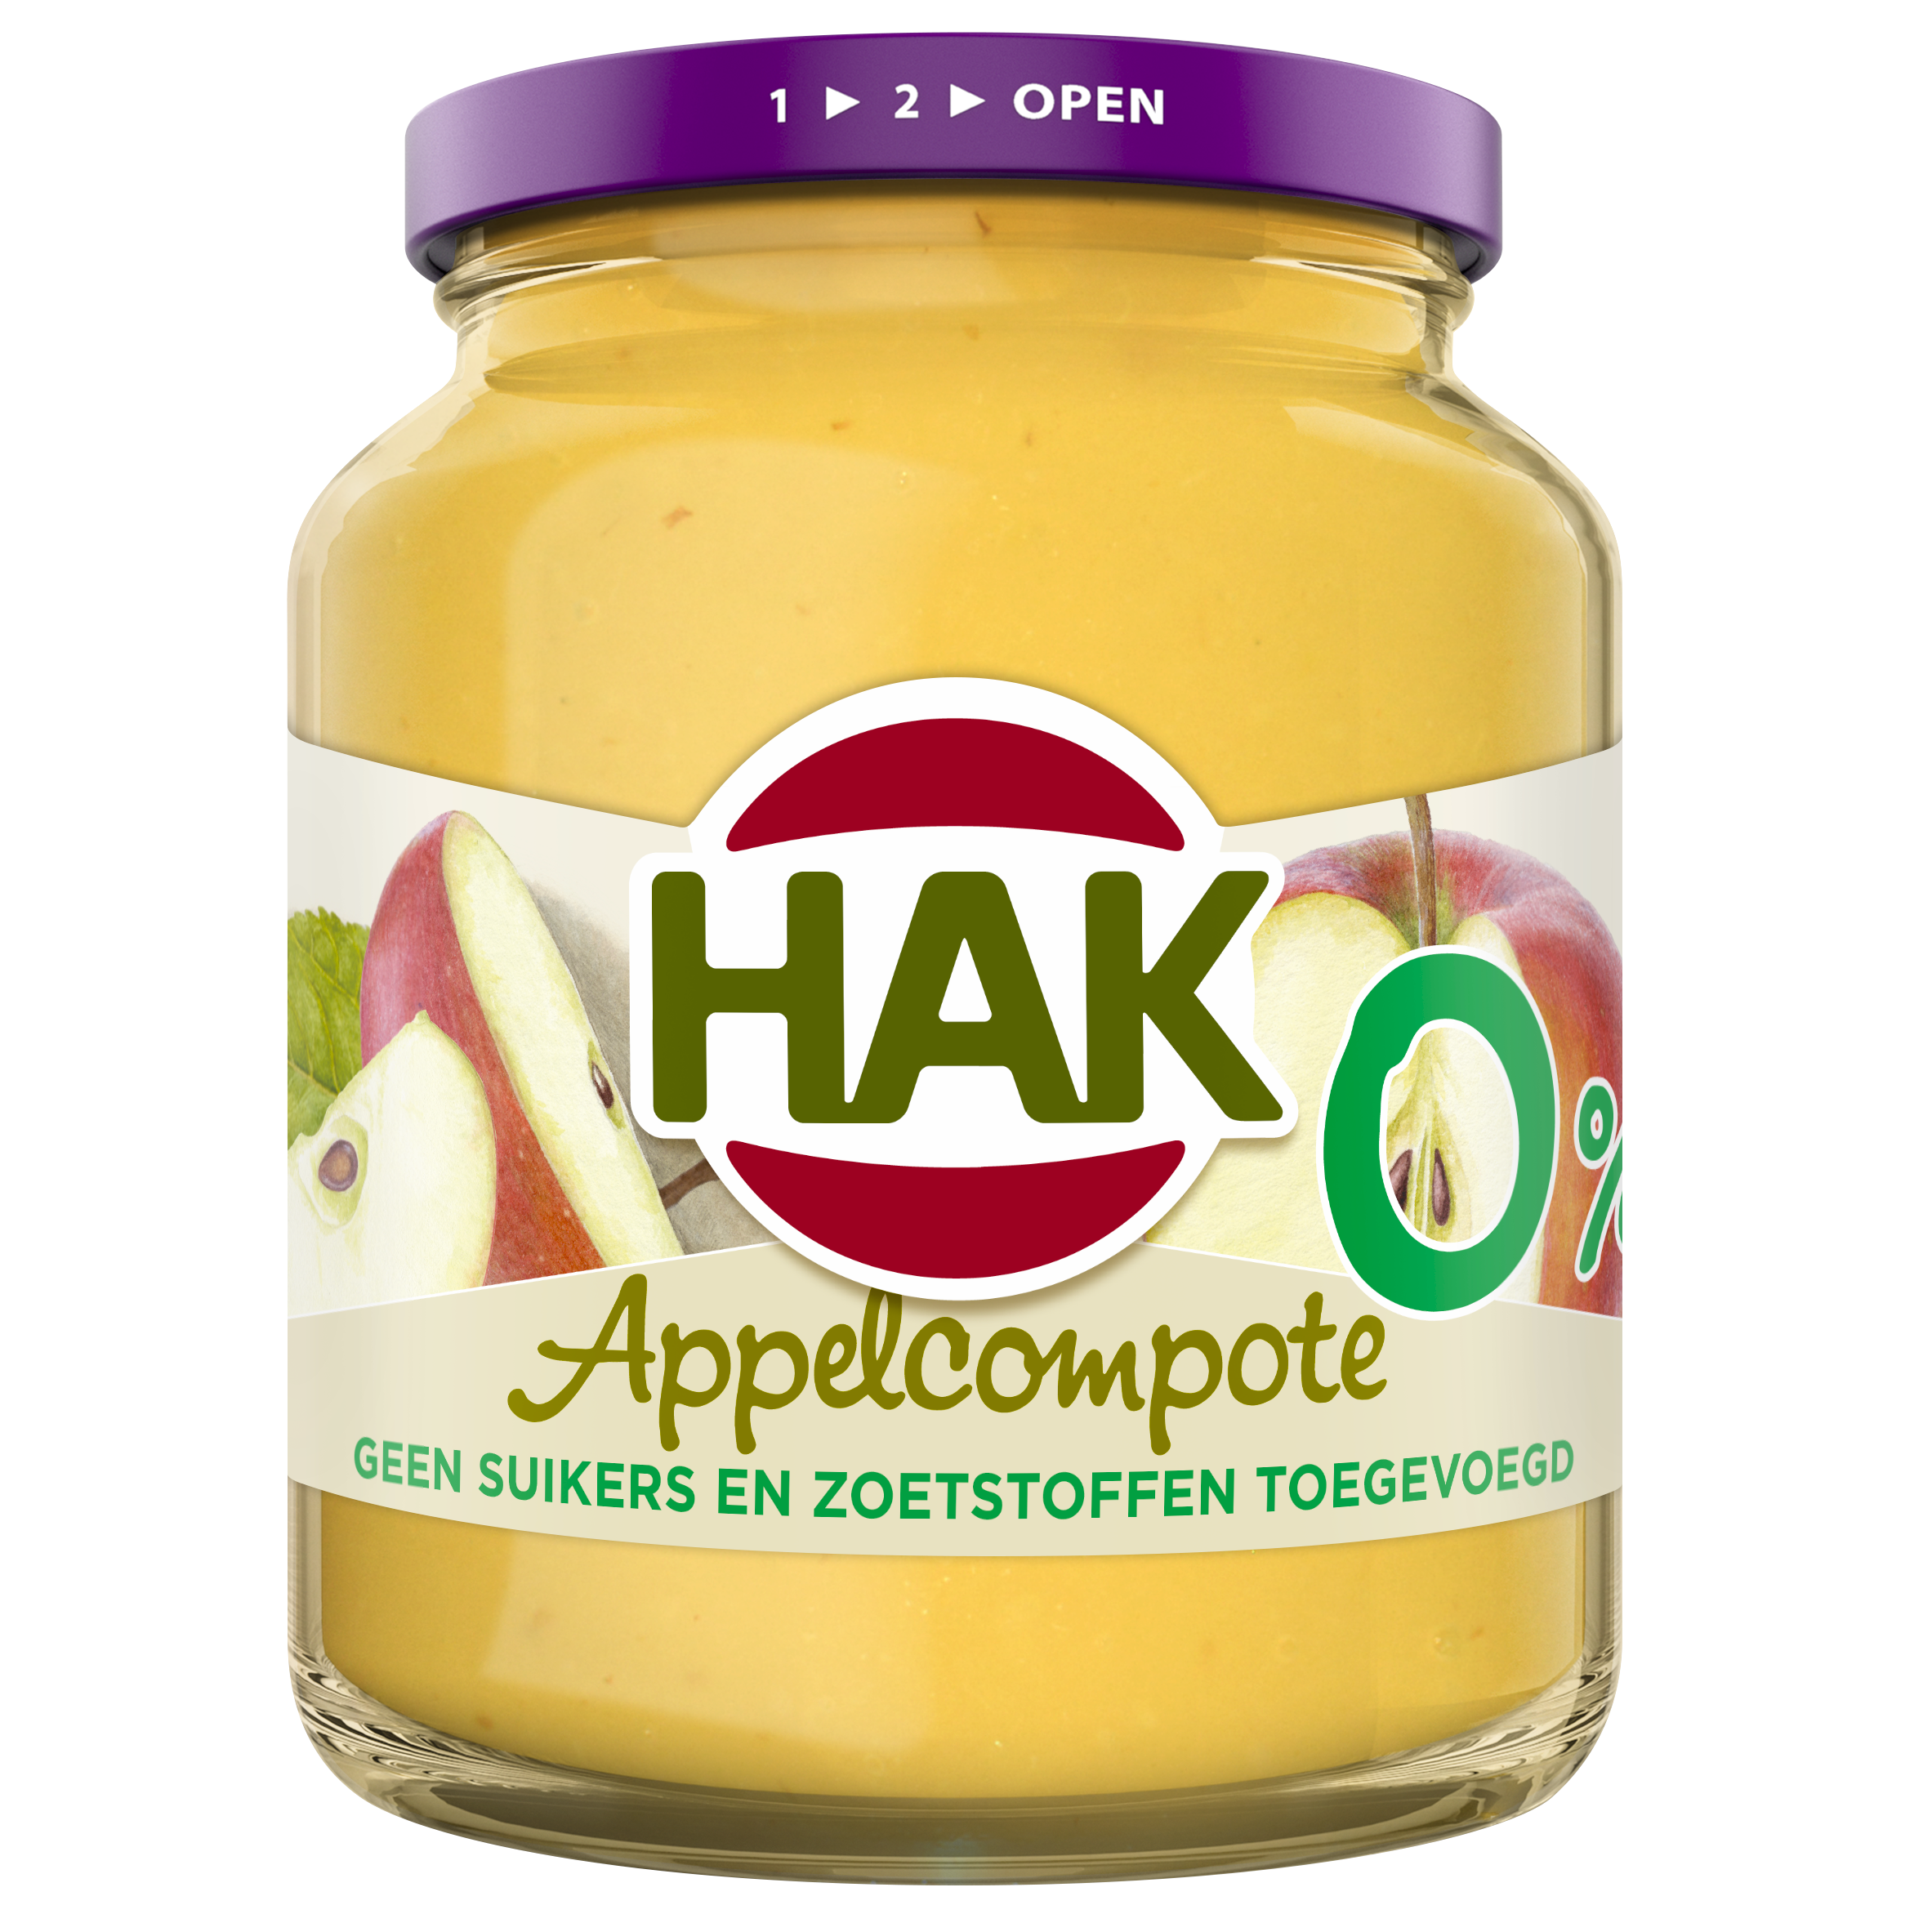 Hak 0 Appelcompote 370 Nl 8720600613944 1802157 Front